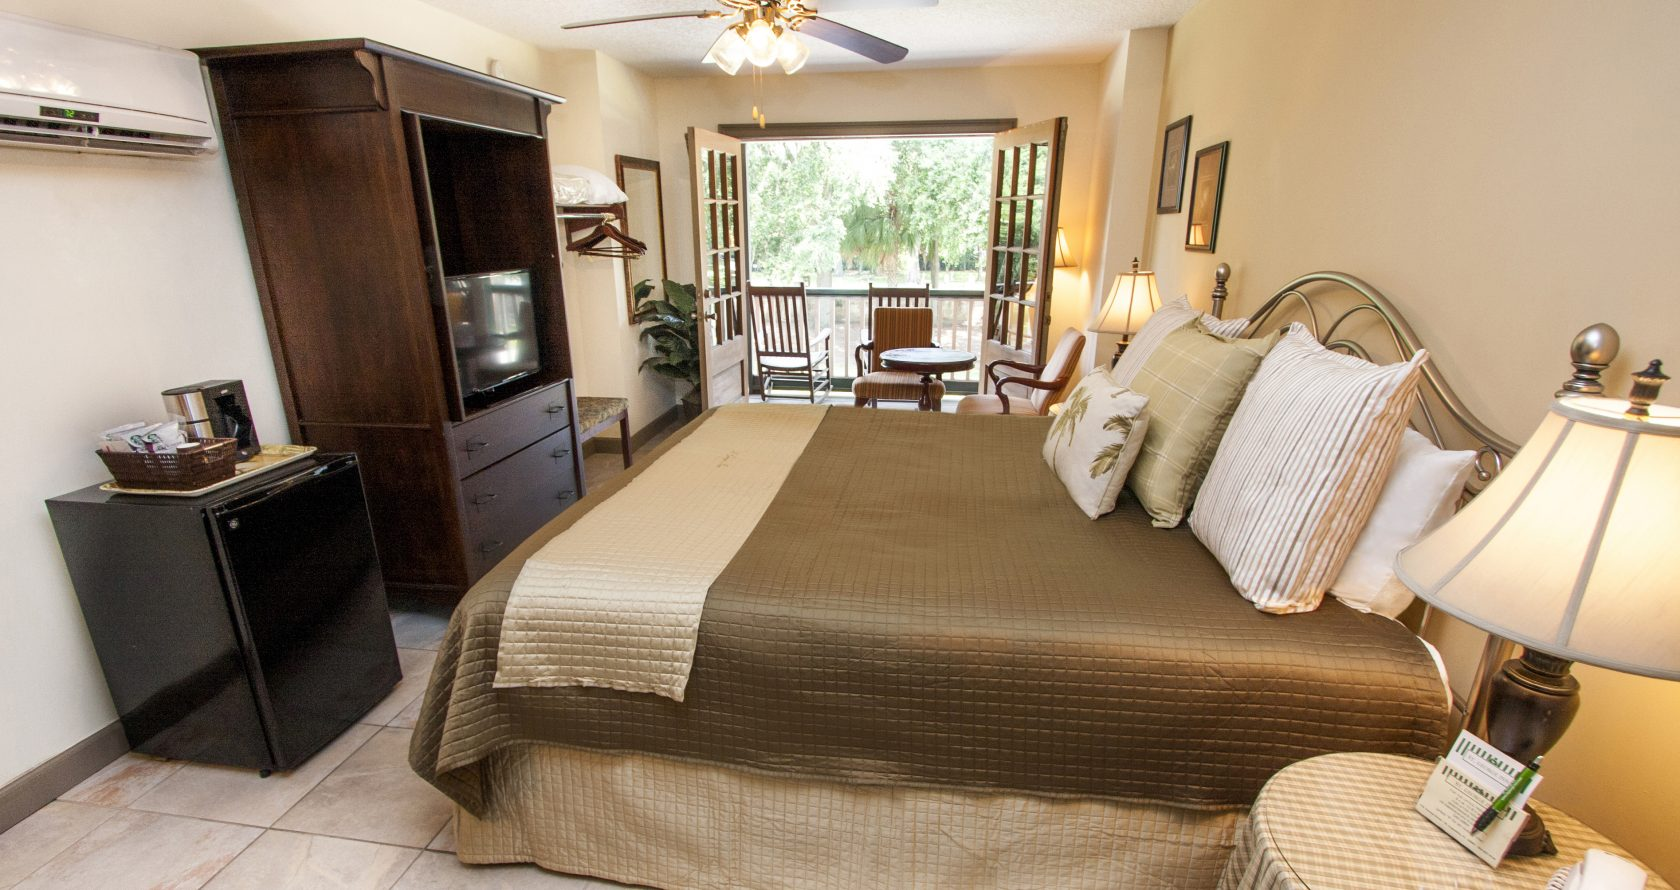 2 bedroom suites in florida%0A The Pinta With Access to a Large Deck